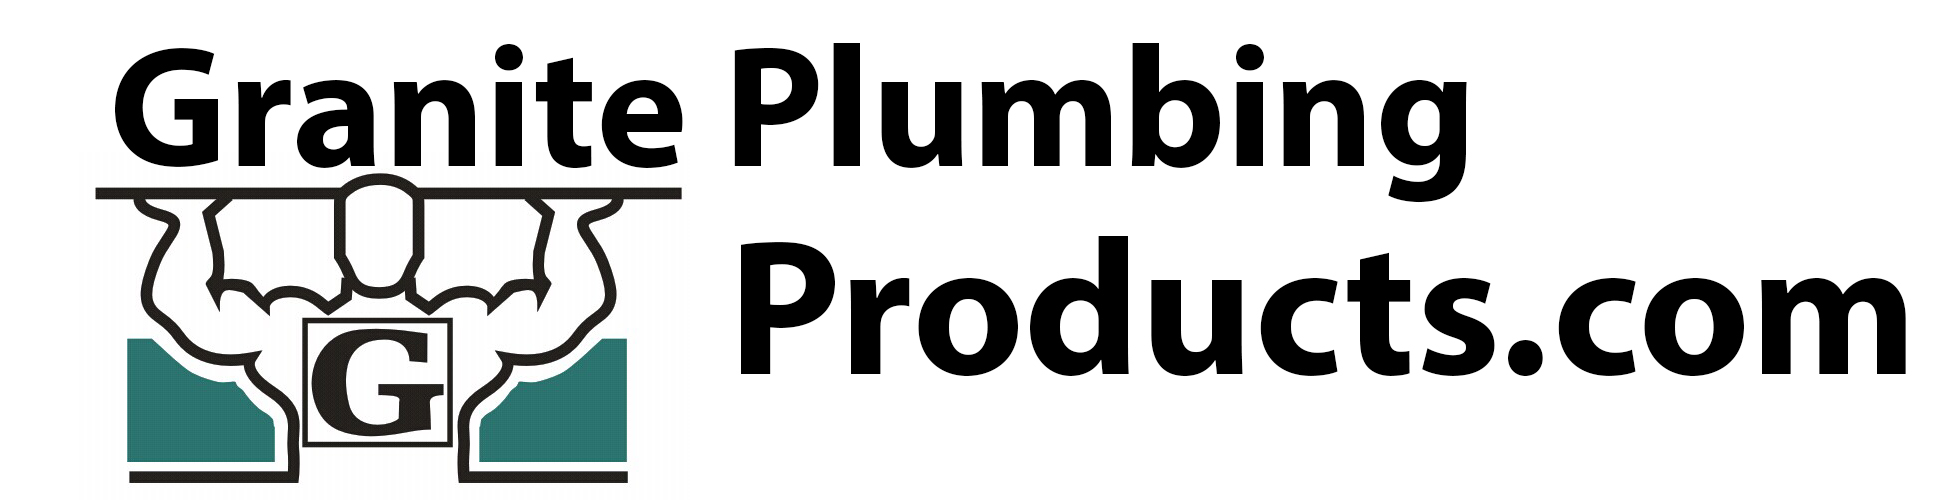 Granite Plumbing: Wholesale Distributor | New York | New Jersey